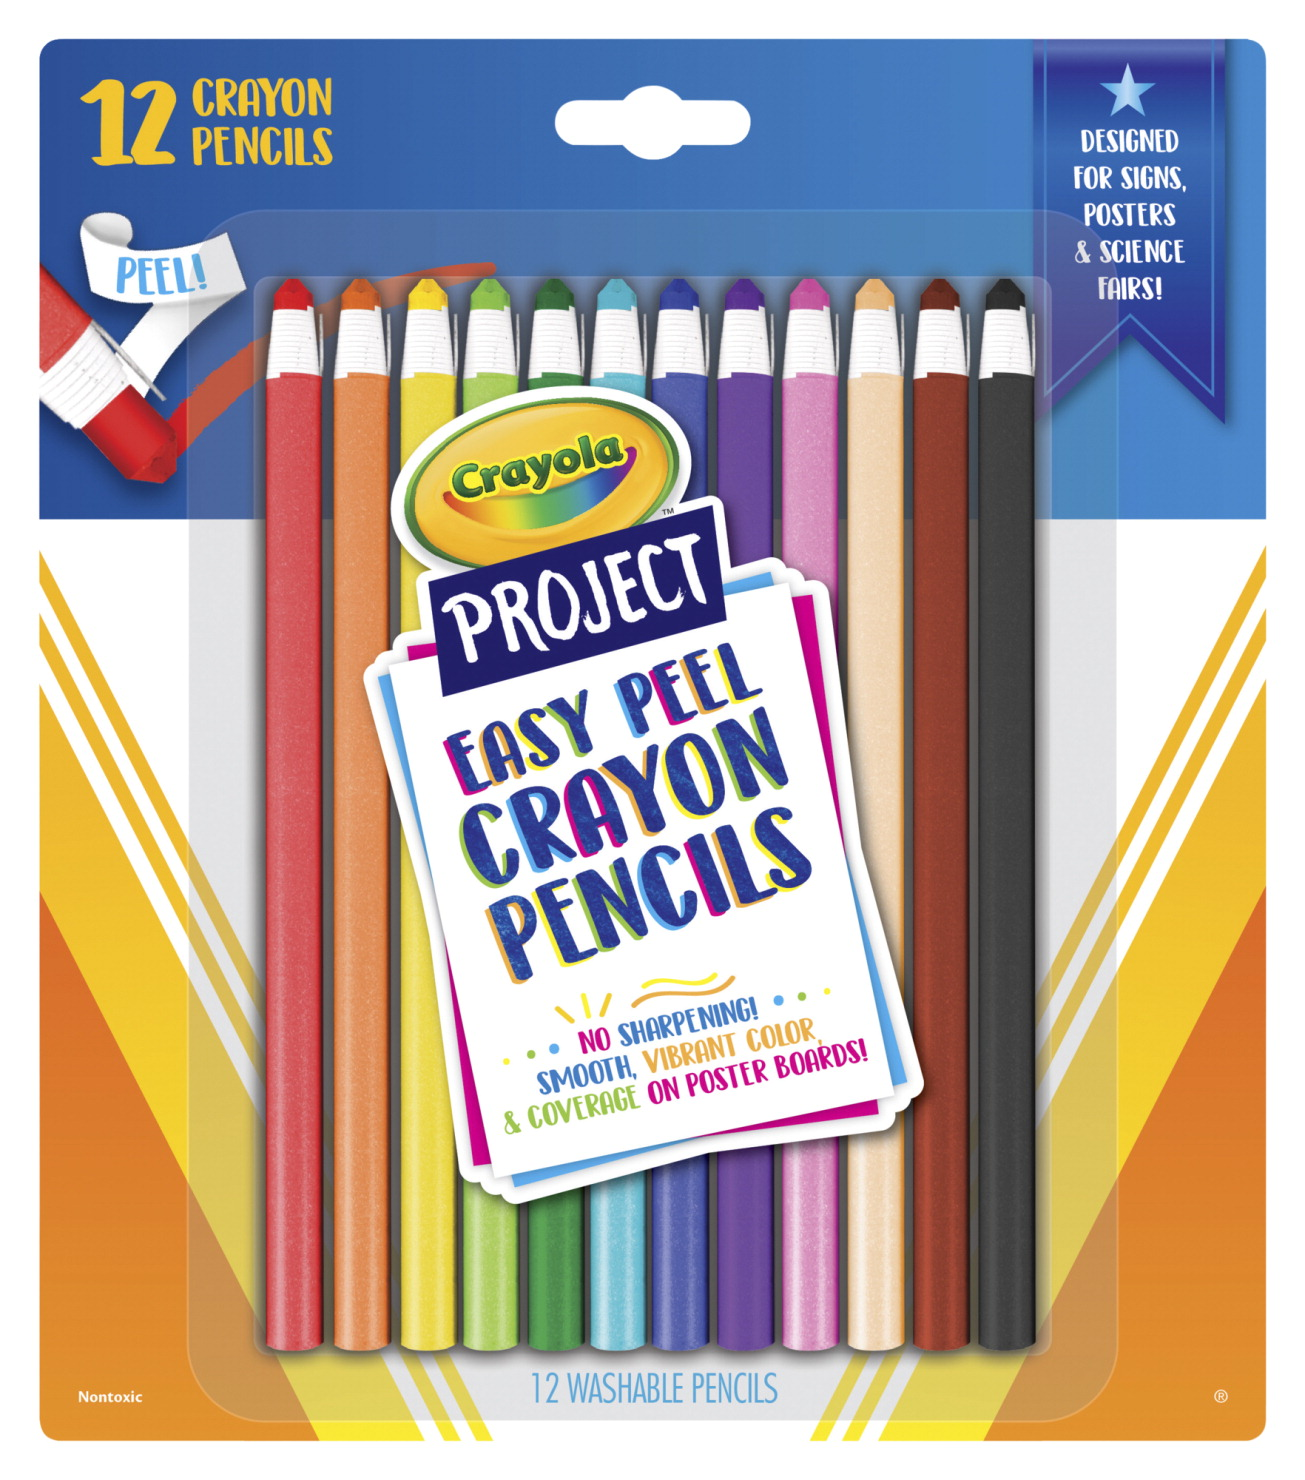 Crayola Project Easy Peel Crayon Pencils, Washable, Assorted Colors, Set of 12